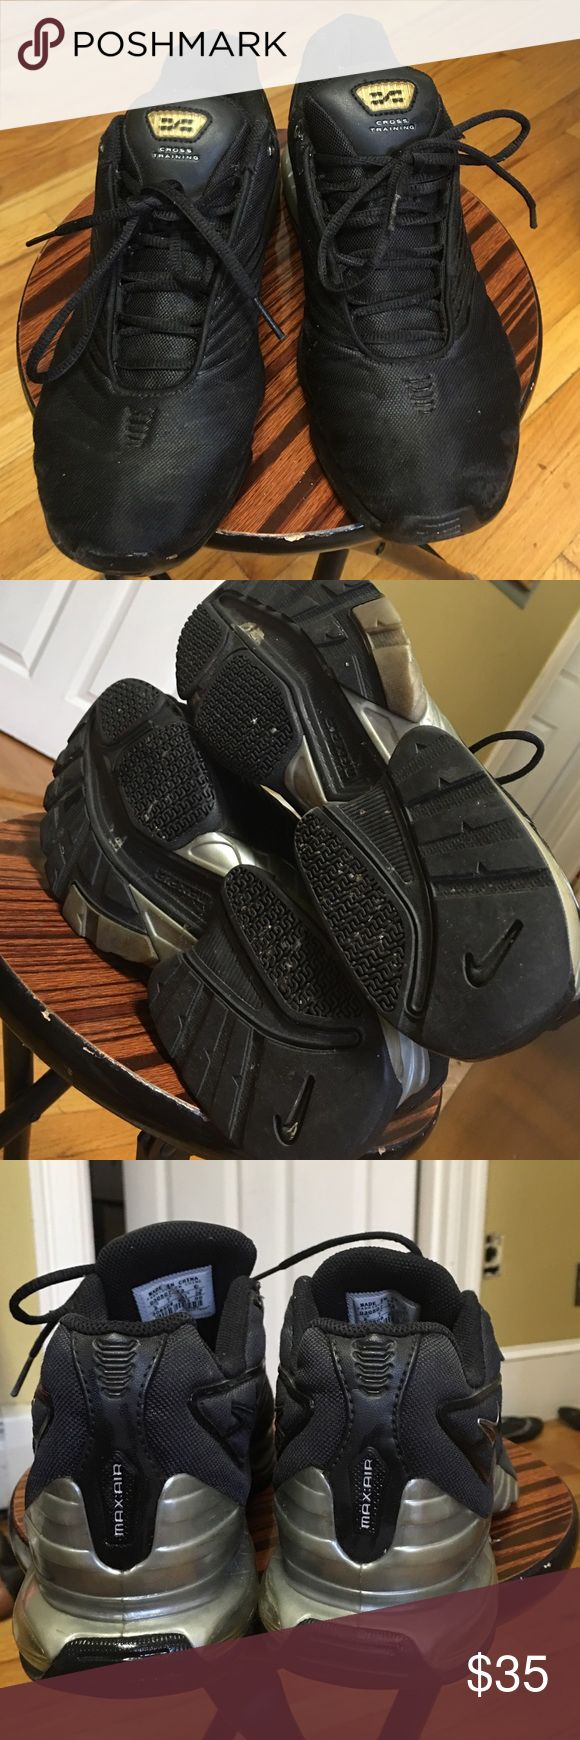 Nike max air  Cross  Training shoes Gentle wear good condition. Size 8 Nike Shoes Sneakers